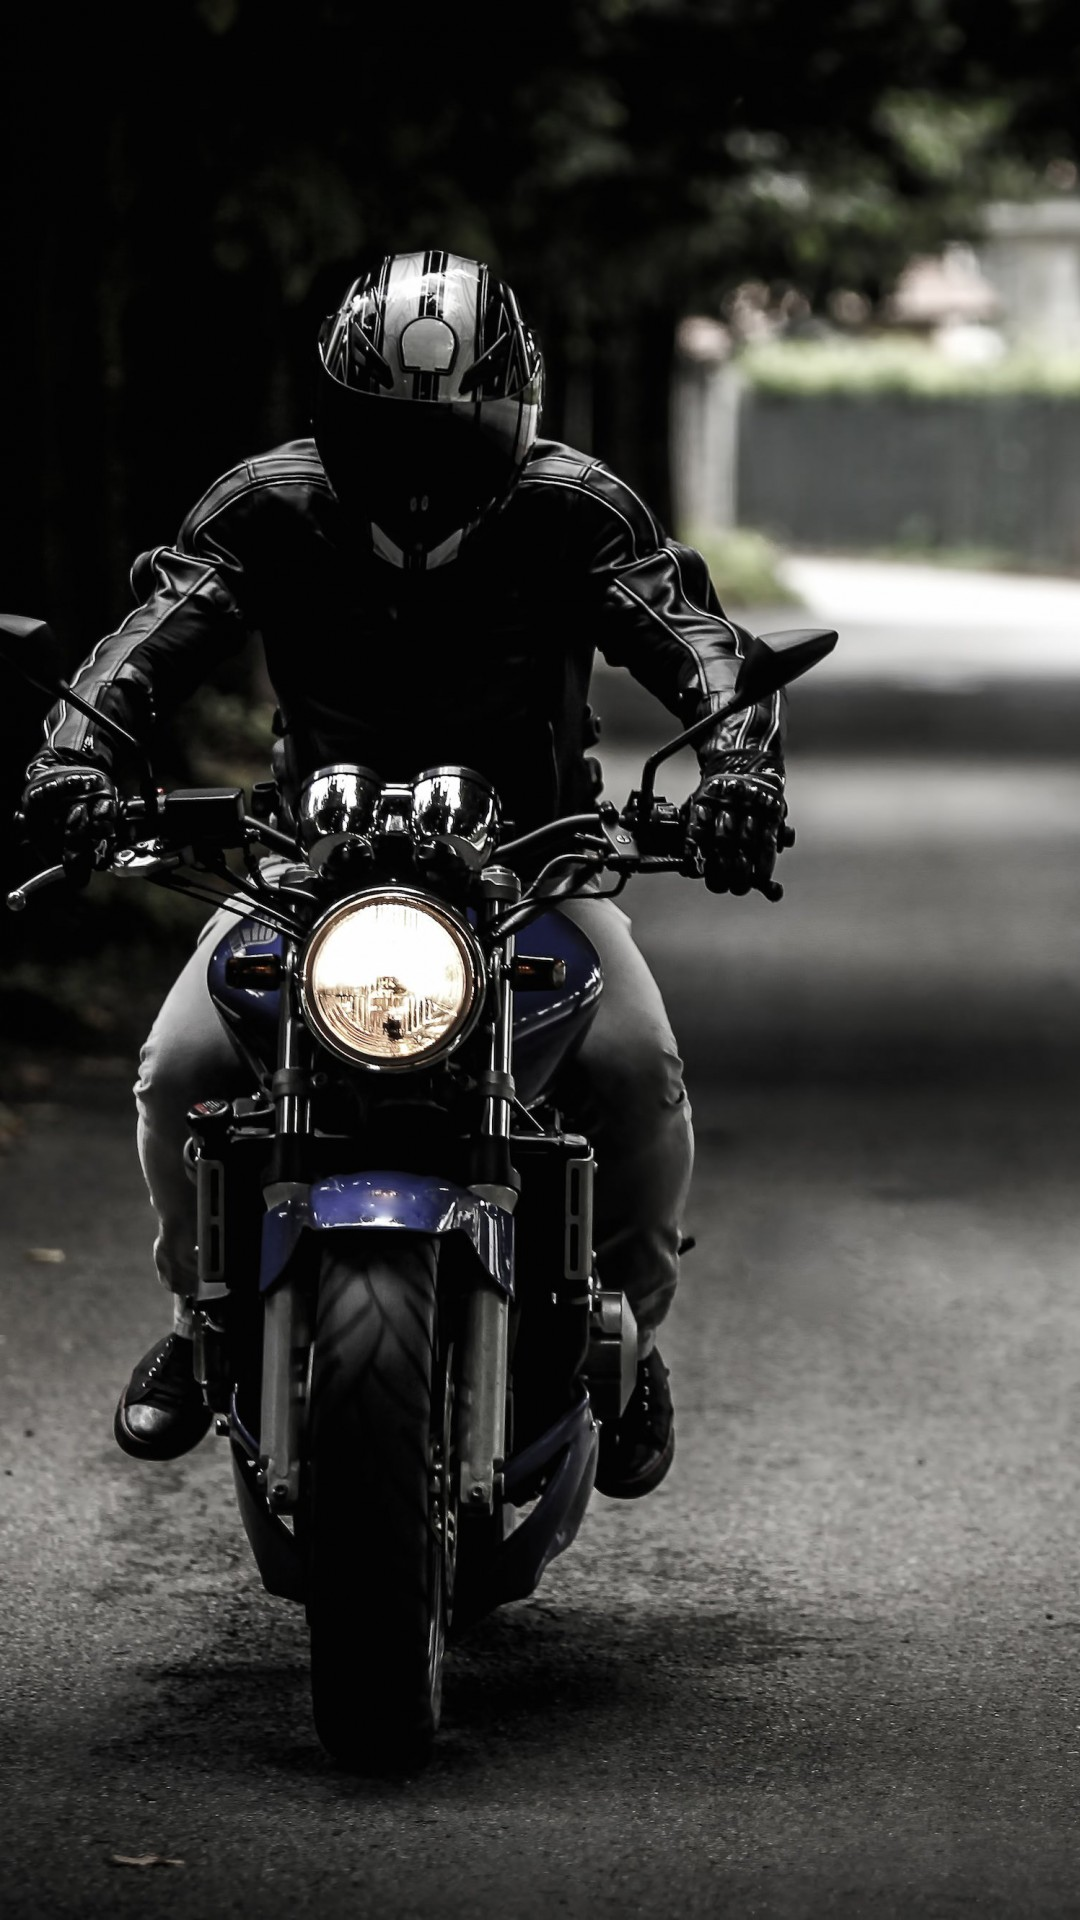 Bike Rider Wallpaper for Google Nexus 5